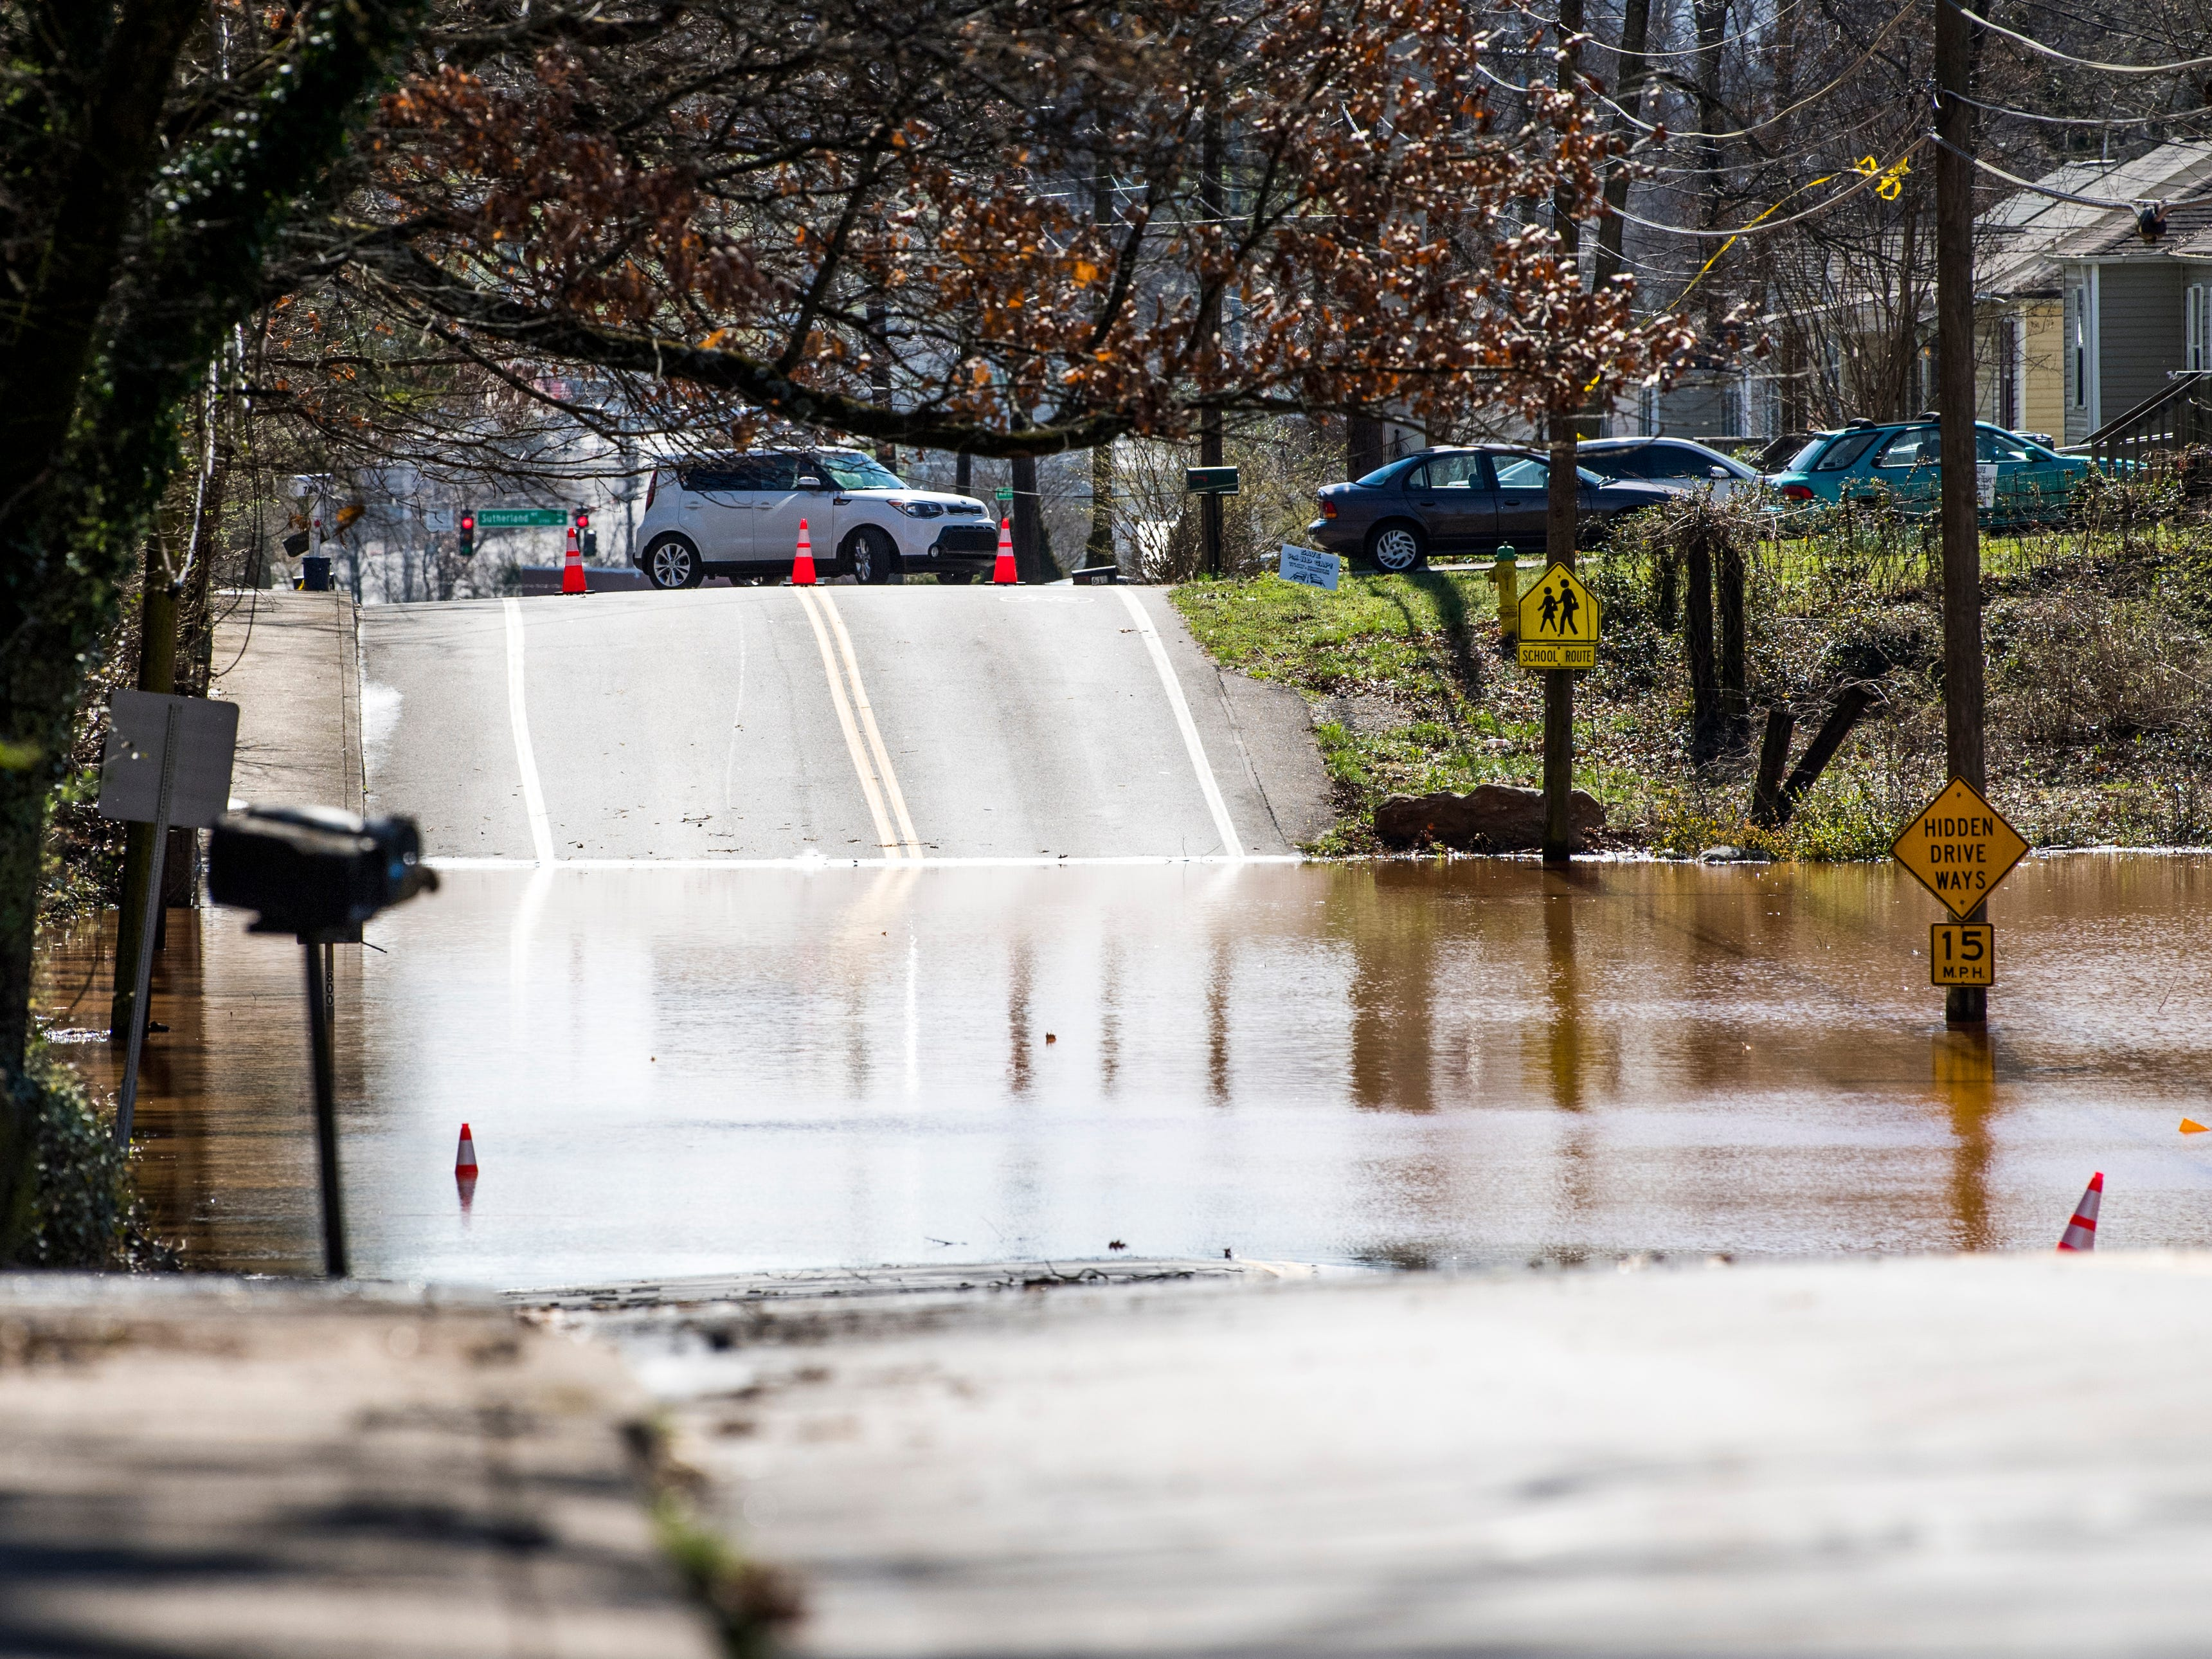 Cars turn around as water continues to flood portions of Hollywood Road in Knoxville around noon time on Sunday, February 24, 2019.